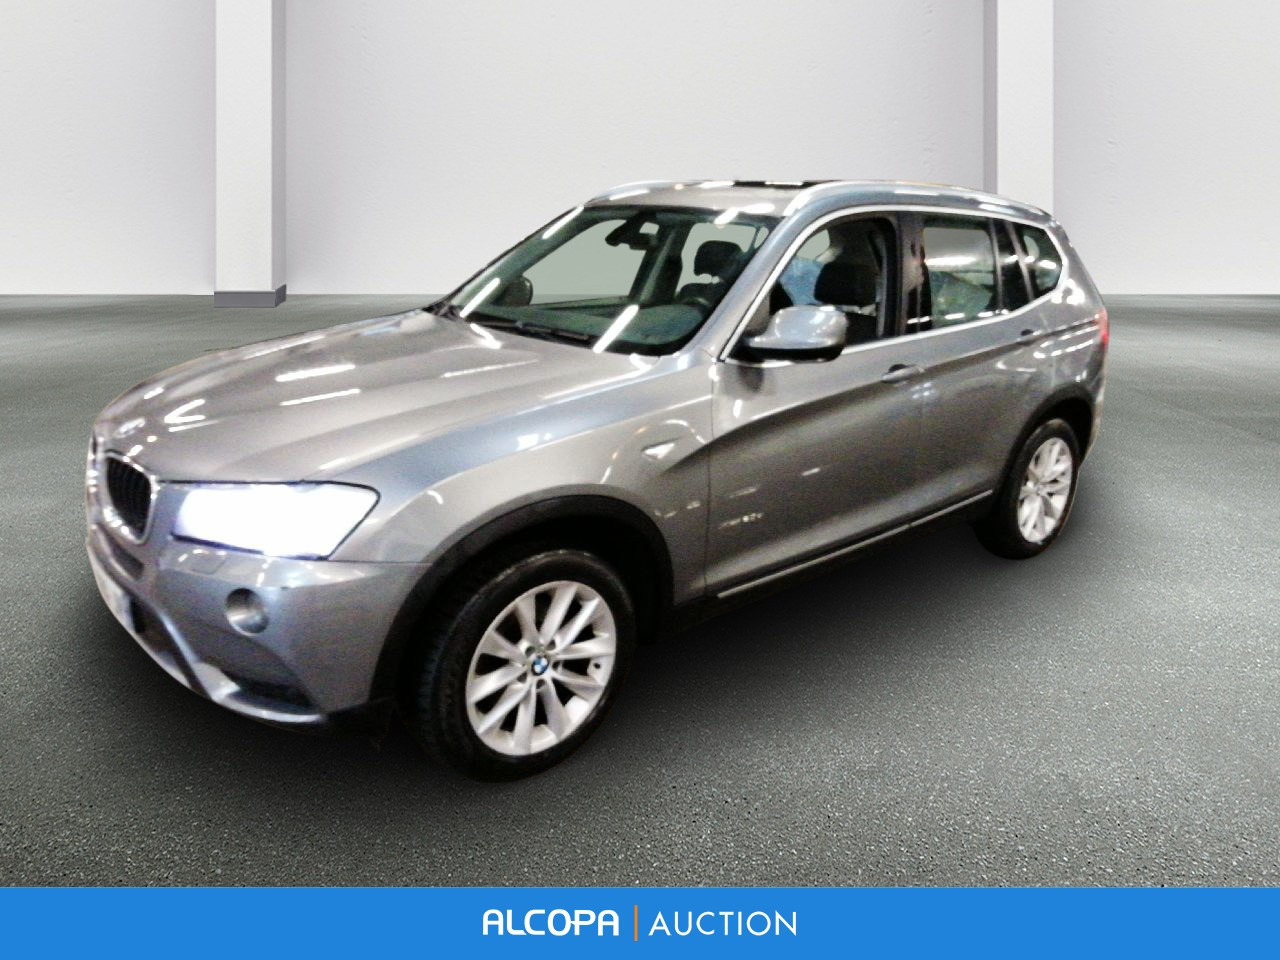 bmw x3 f25 x3 xdrive20d 184ch excellis steptronic a alcopa auction. Black Bedroom Furniture Sets. Home Design Ideas